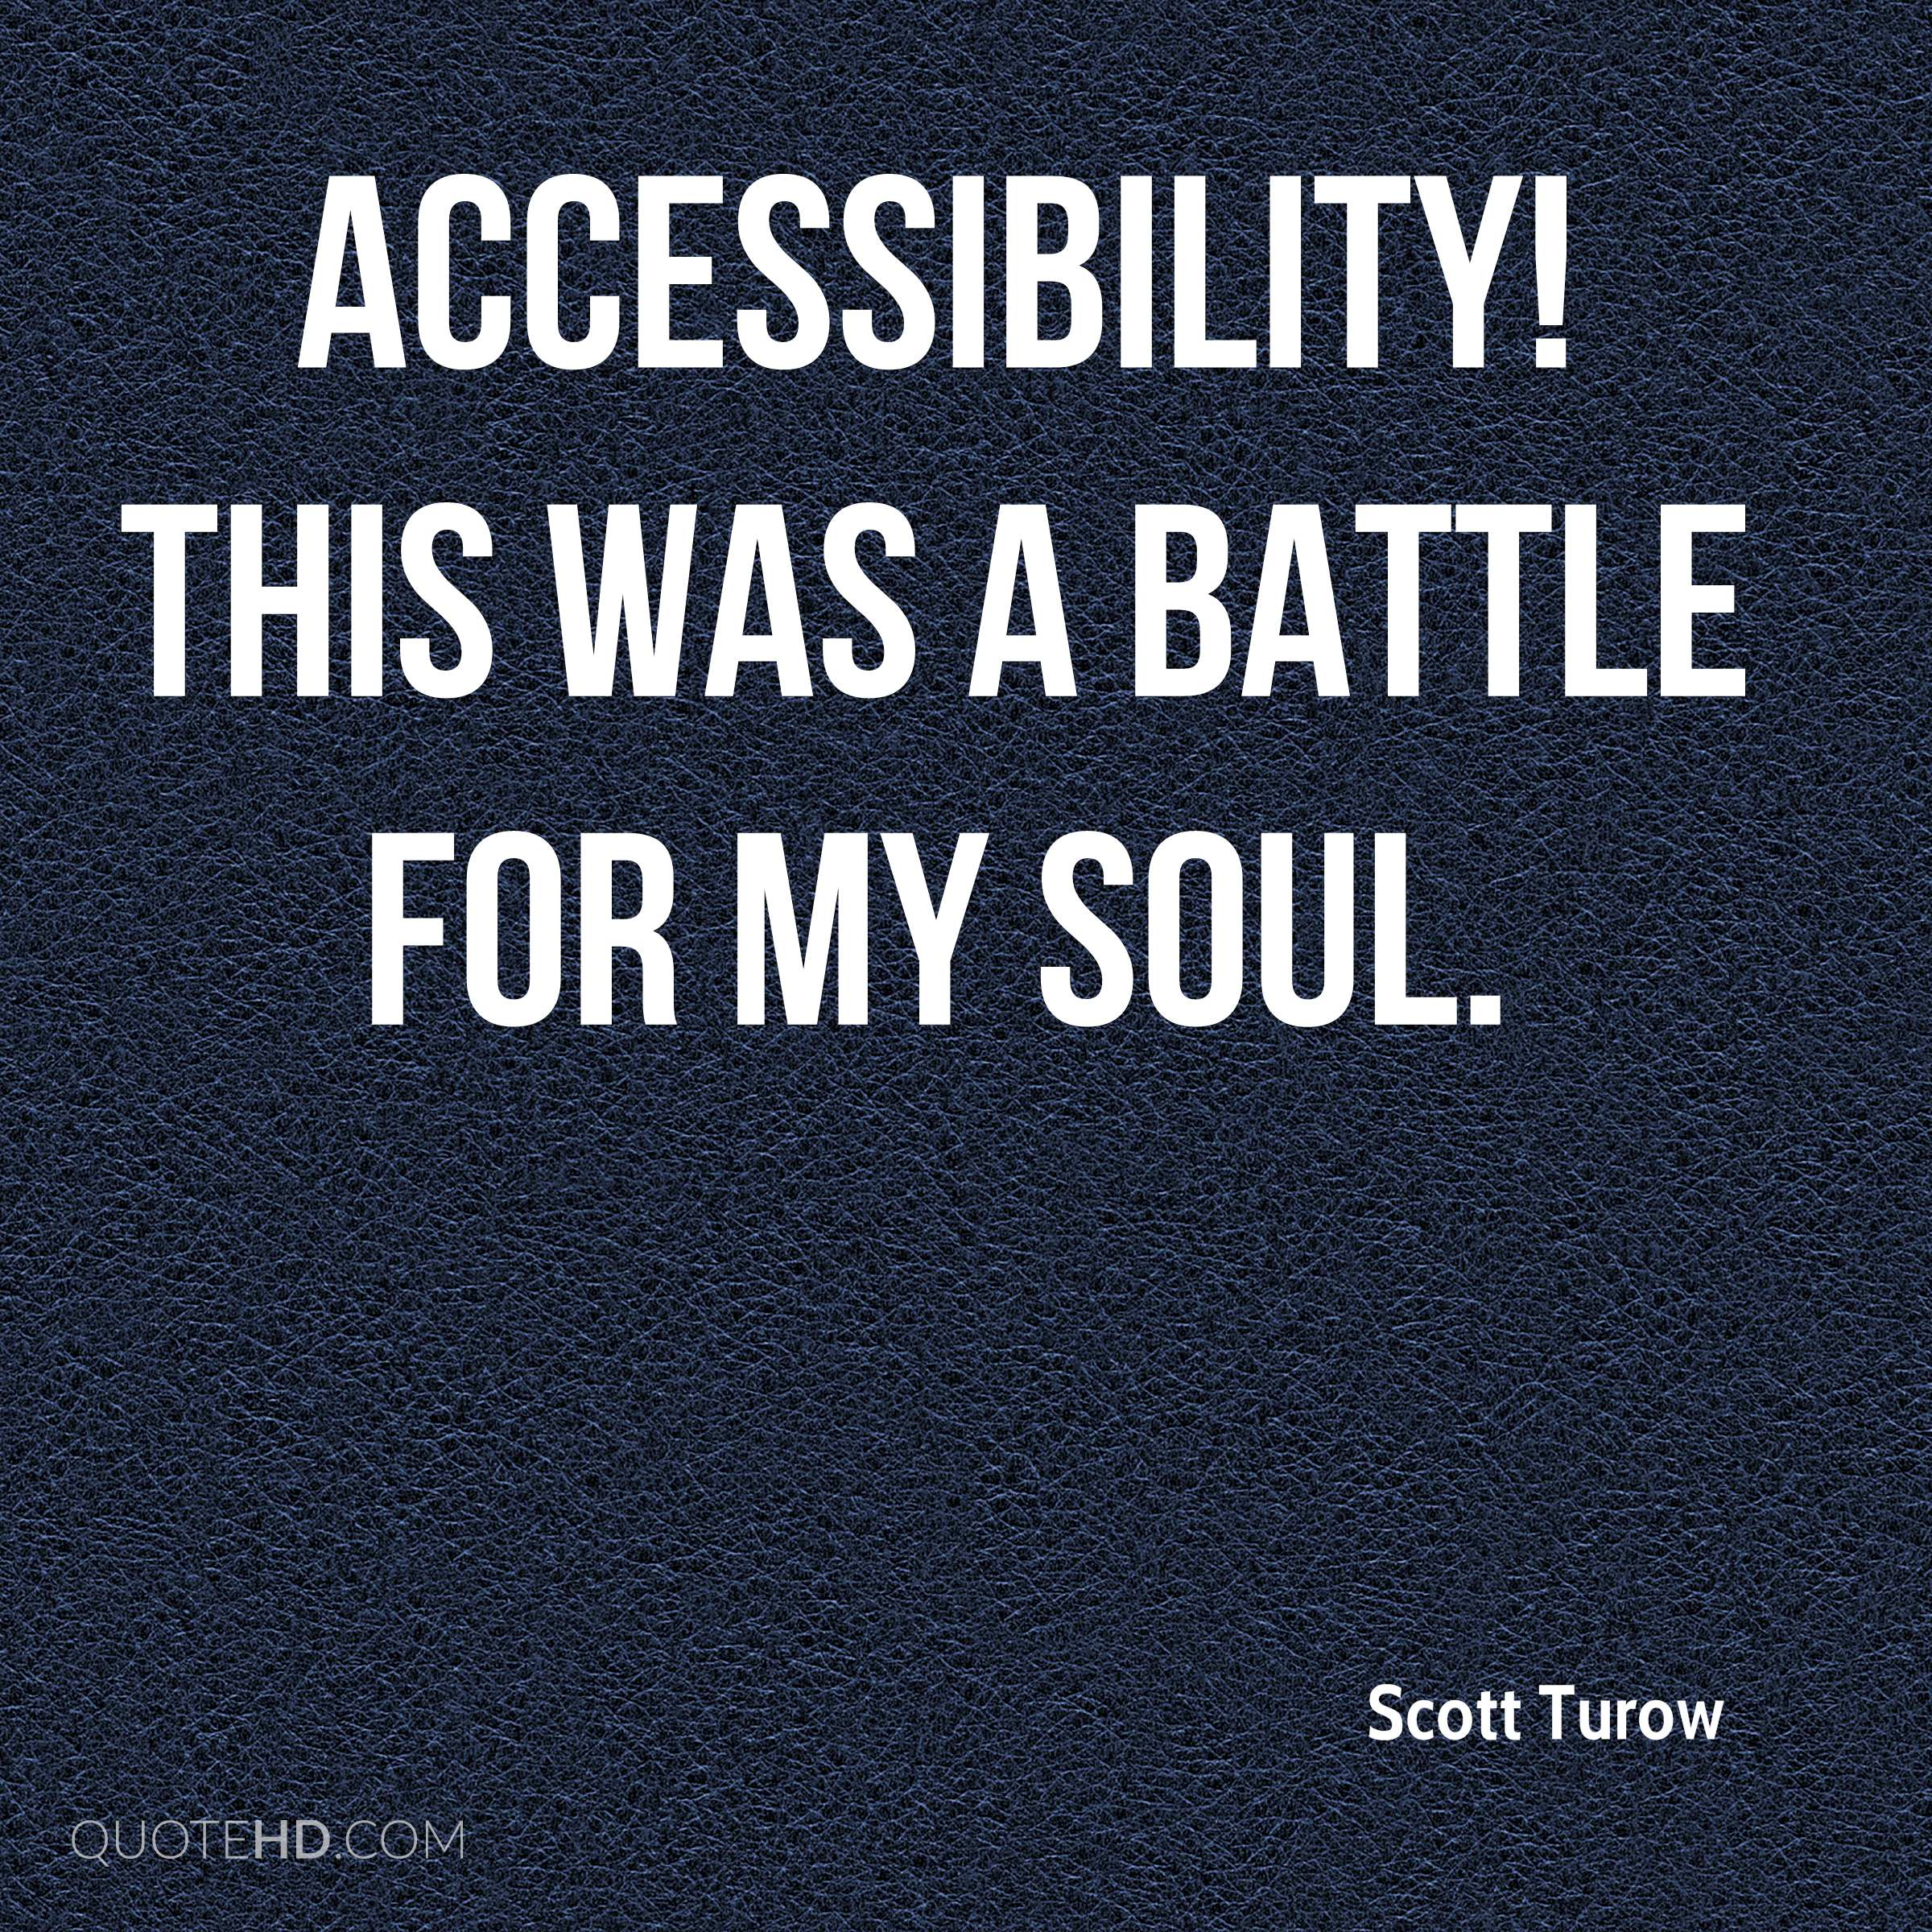 Accessibility! This was a battle for my soul.